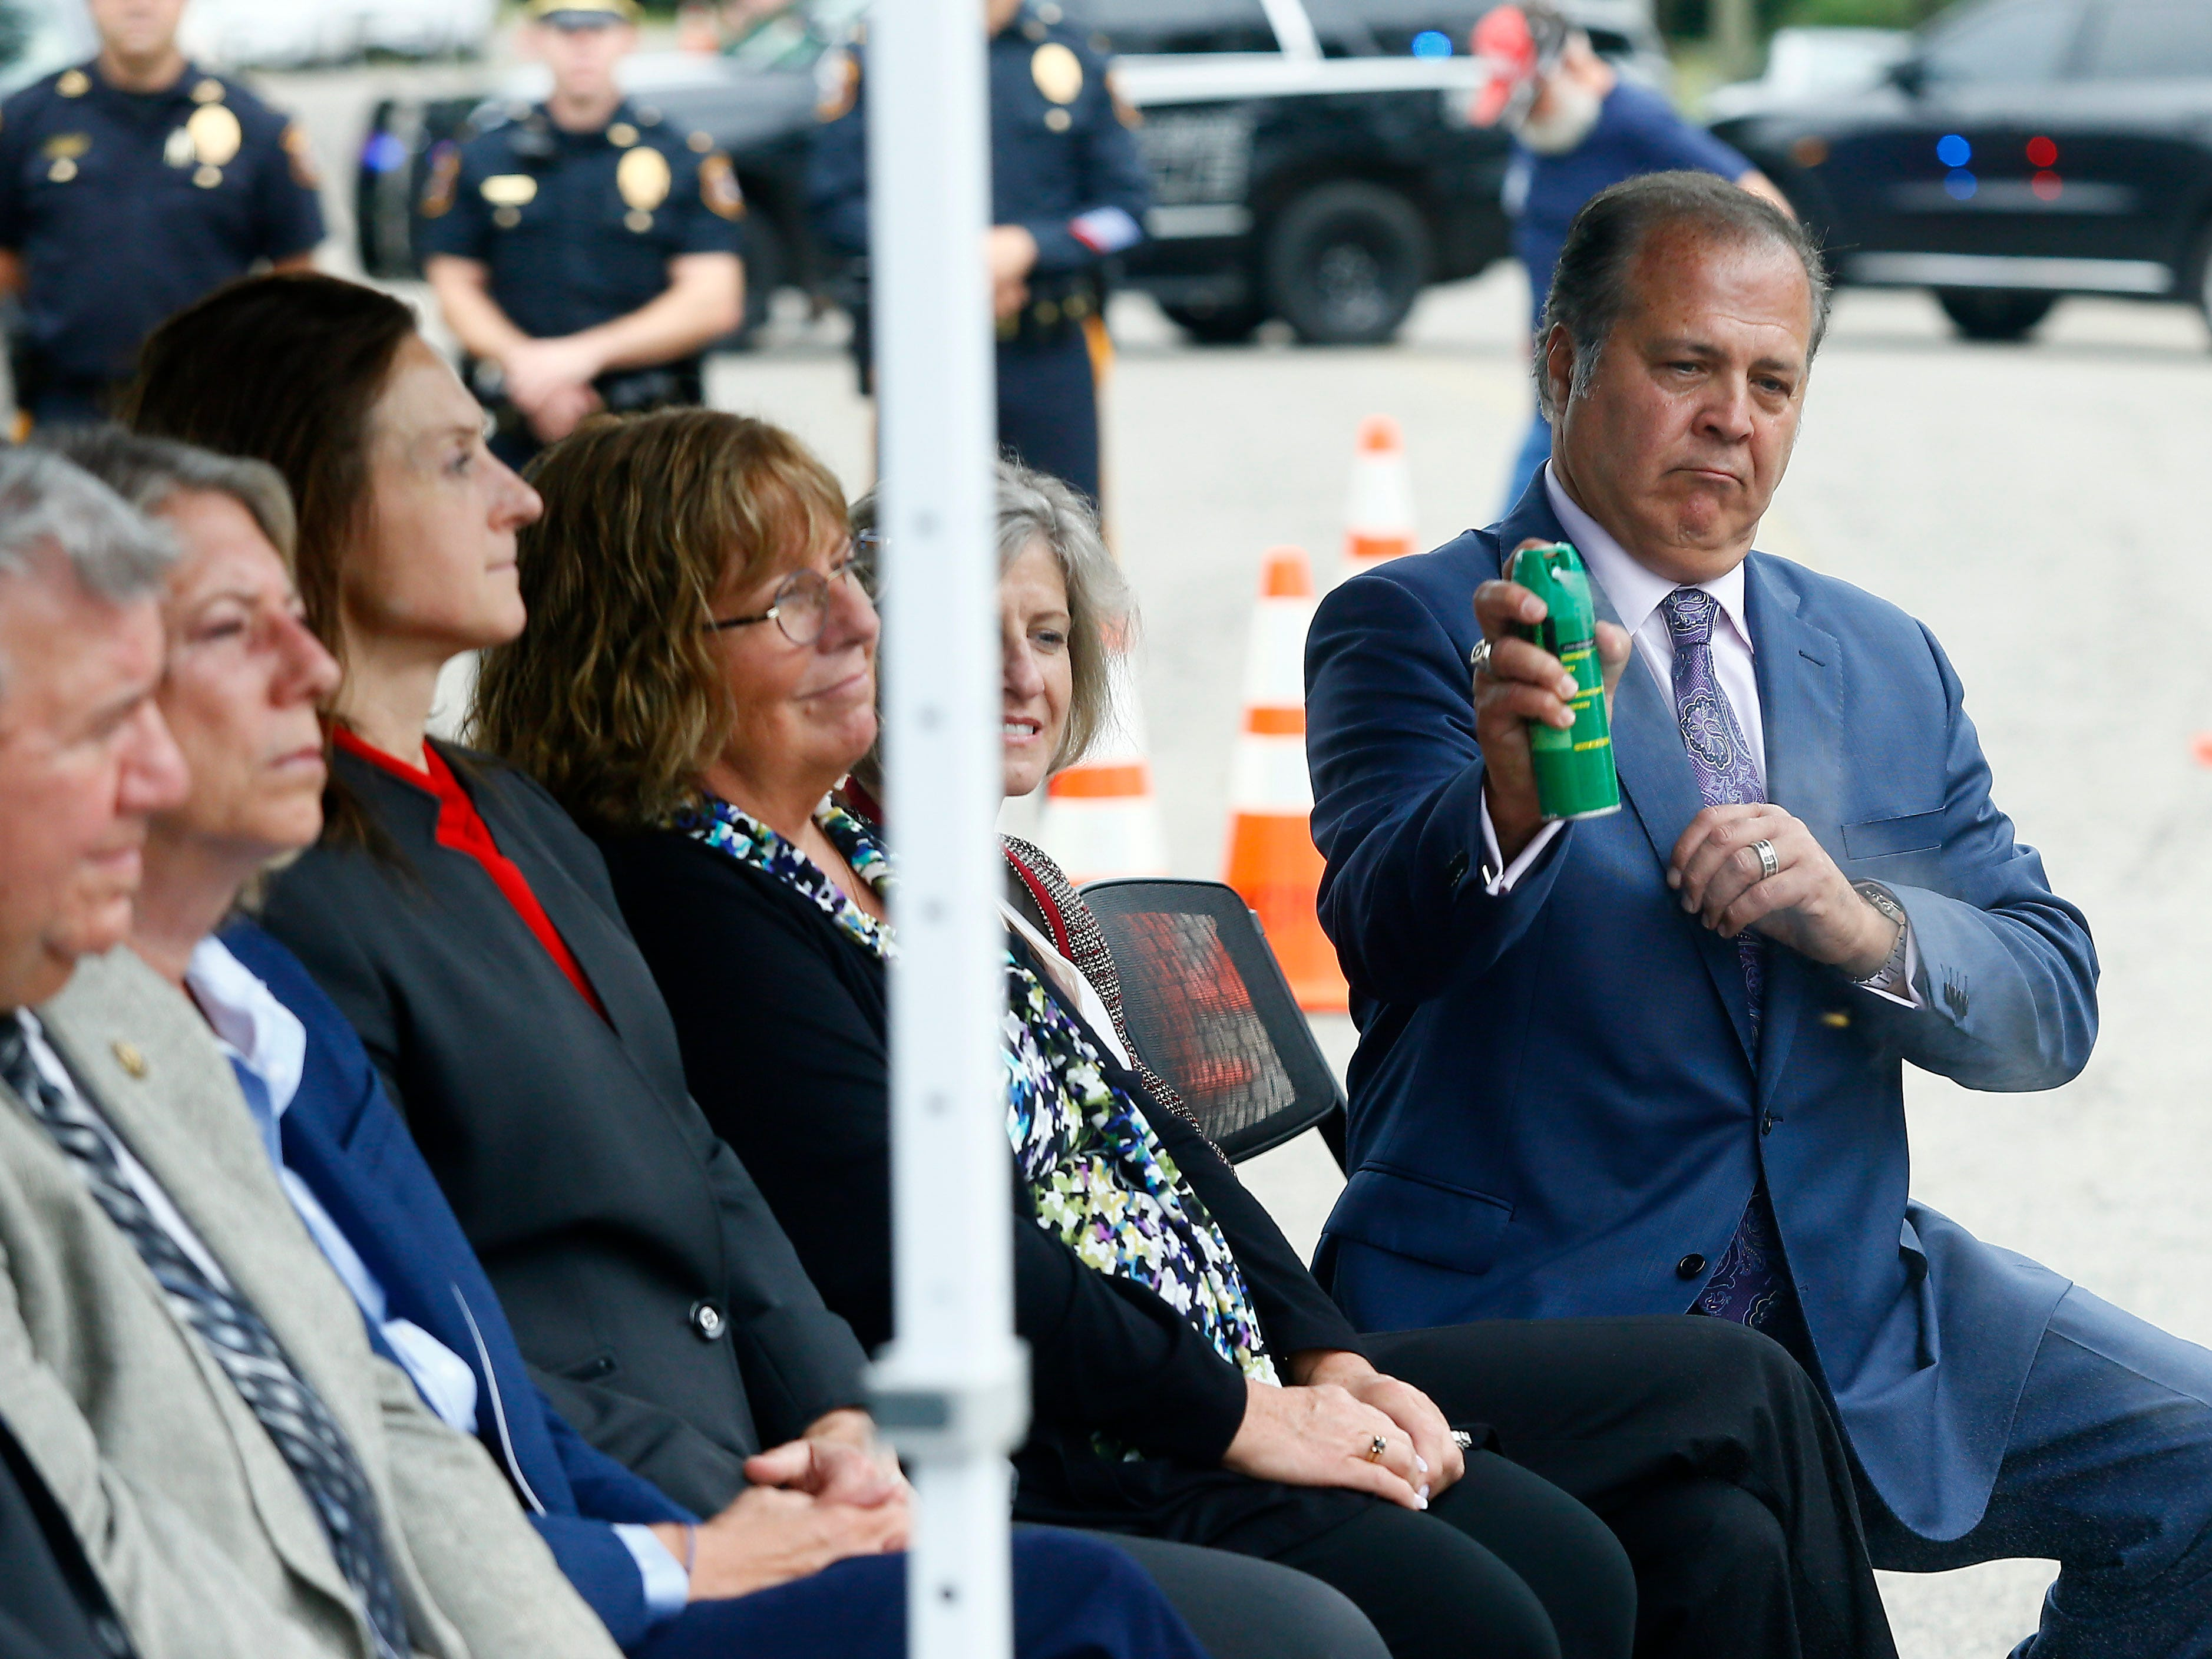 Freeholder Thomas J. Mastrangelo came prepared for a swarm of bees that showed up as Morris County freeholders formally open Gov. Chris Christie Drive, a new main access road to Central Park of Morris County. September 12, 2018, Morris Plains, NJ